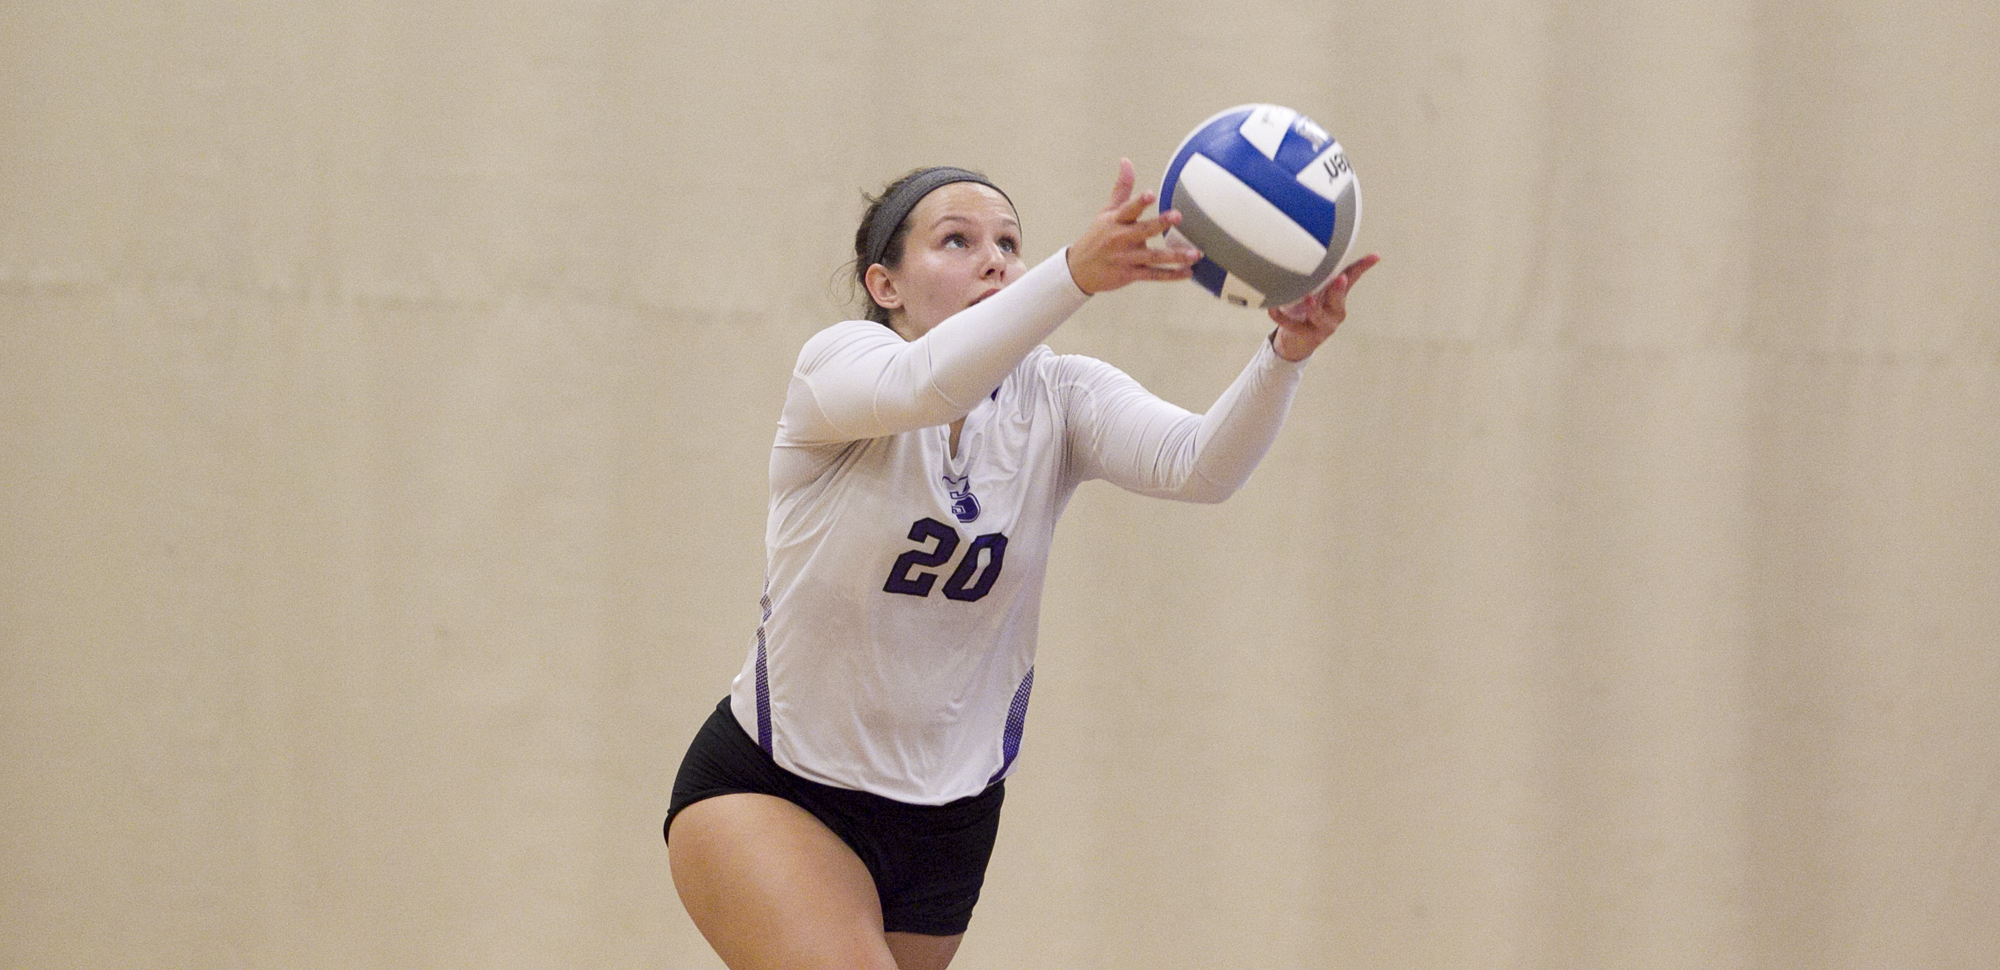 Regina Schetroma picked up a match-high 17 digs in Scranton's win over Fredonia on Friday night as the Royals won their second match of the evening.